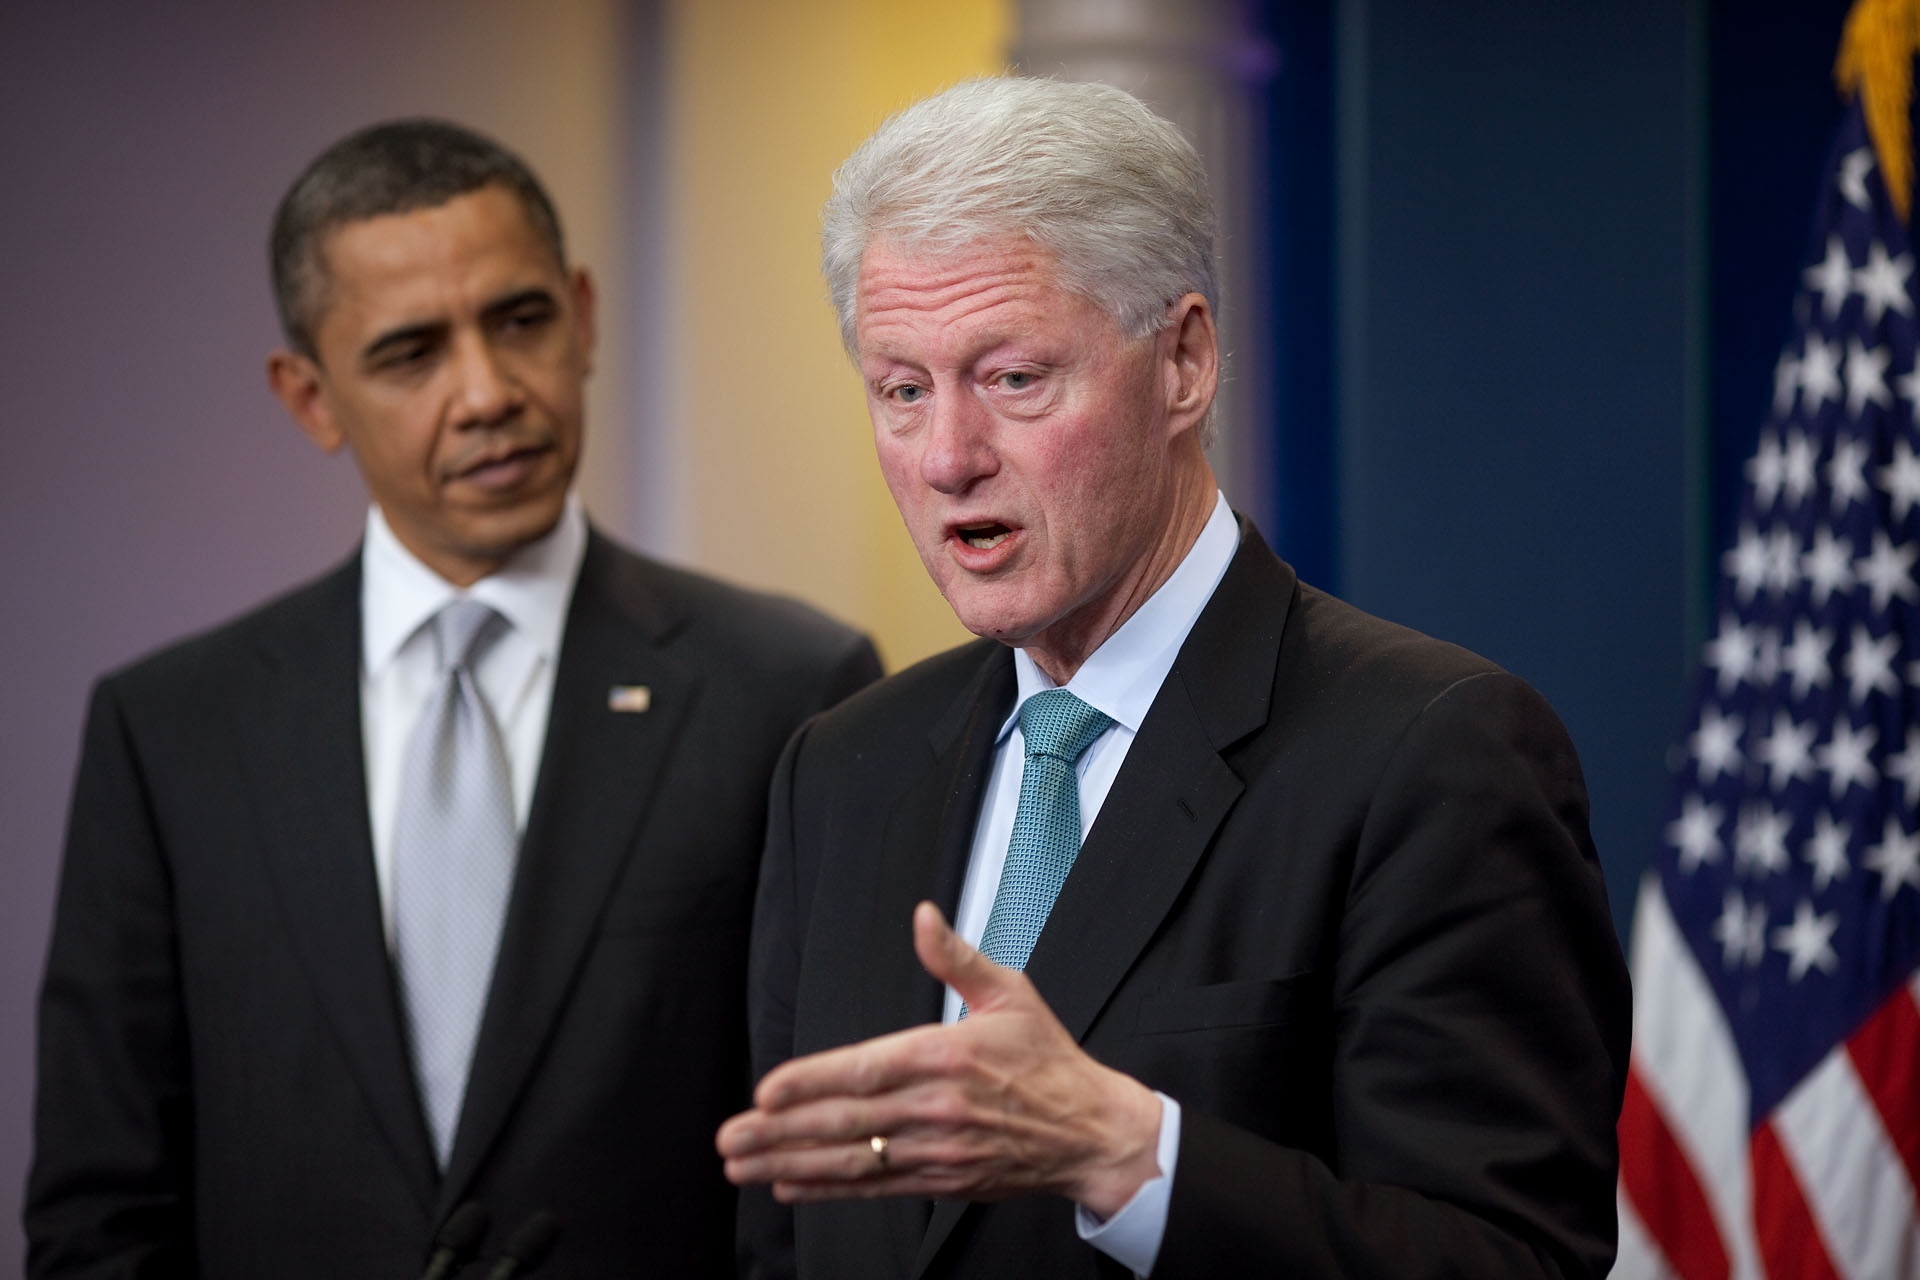 obama clinton taxes LJ 0102 - Bill Clinton's sex scandal with Monica Lewinsky was exposed 20 years ago today